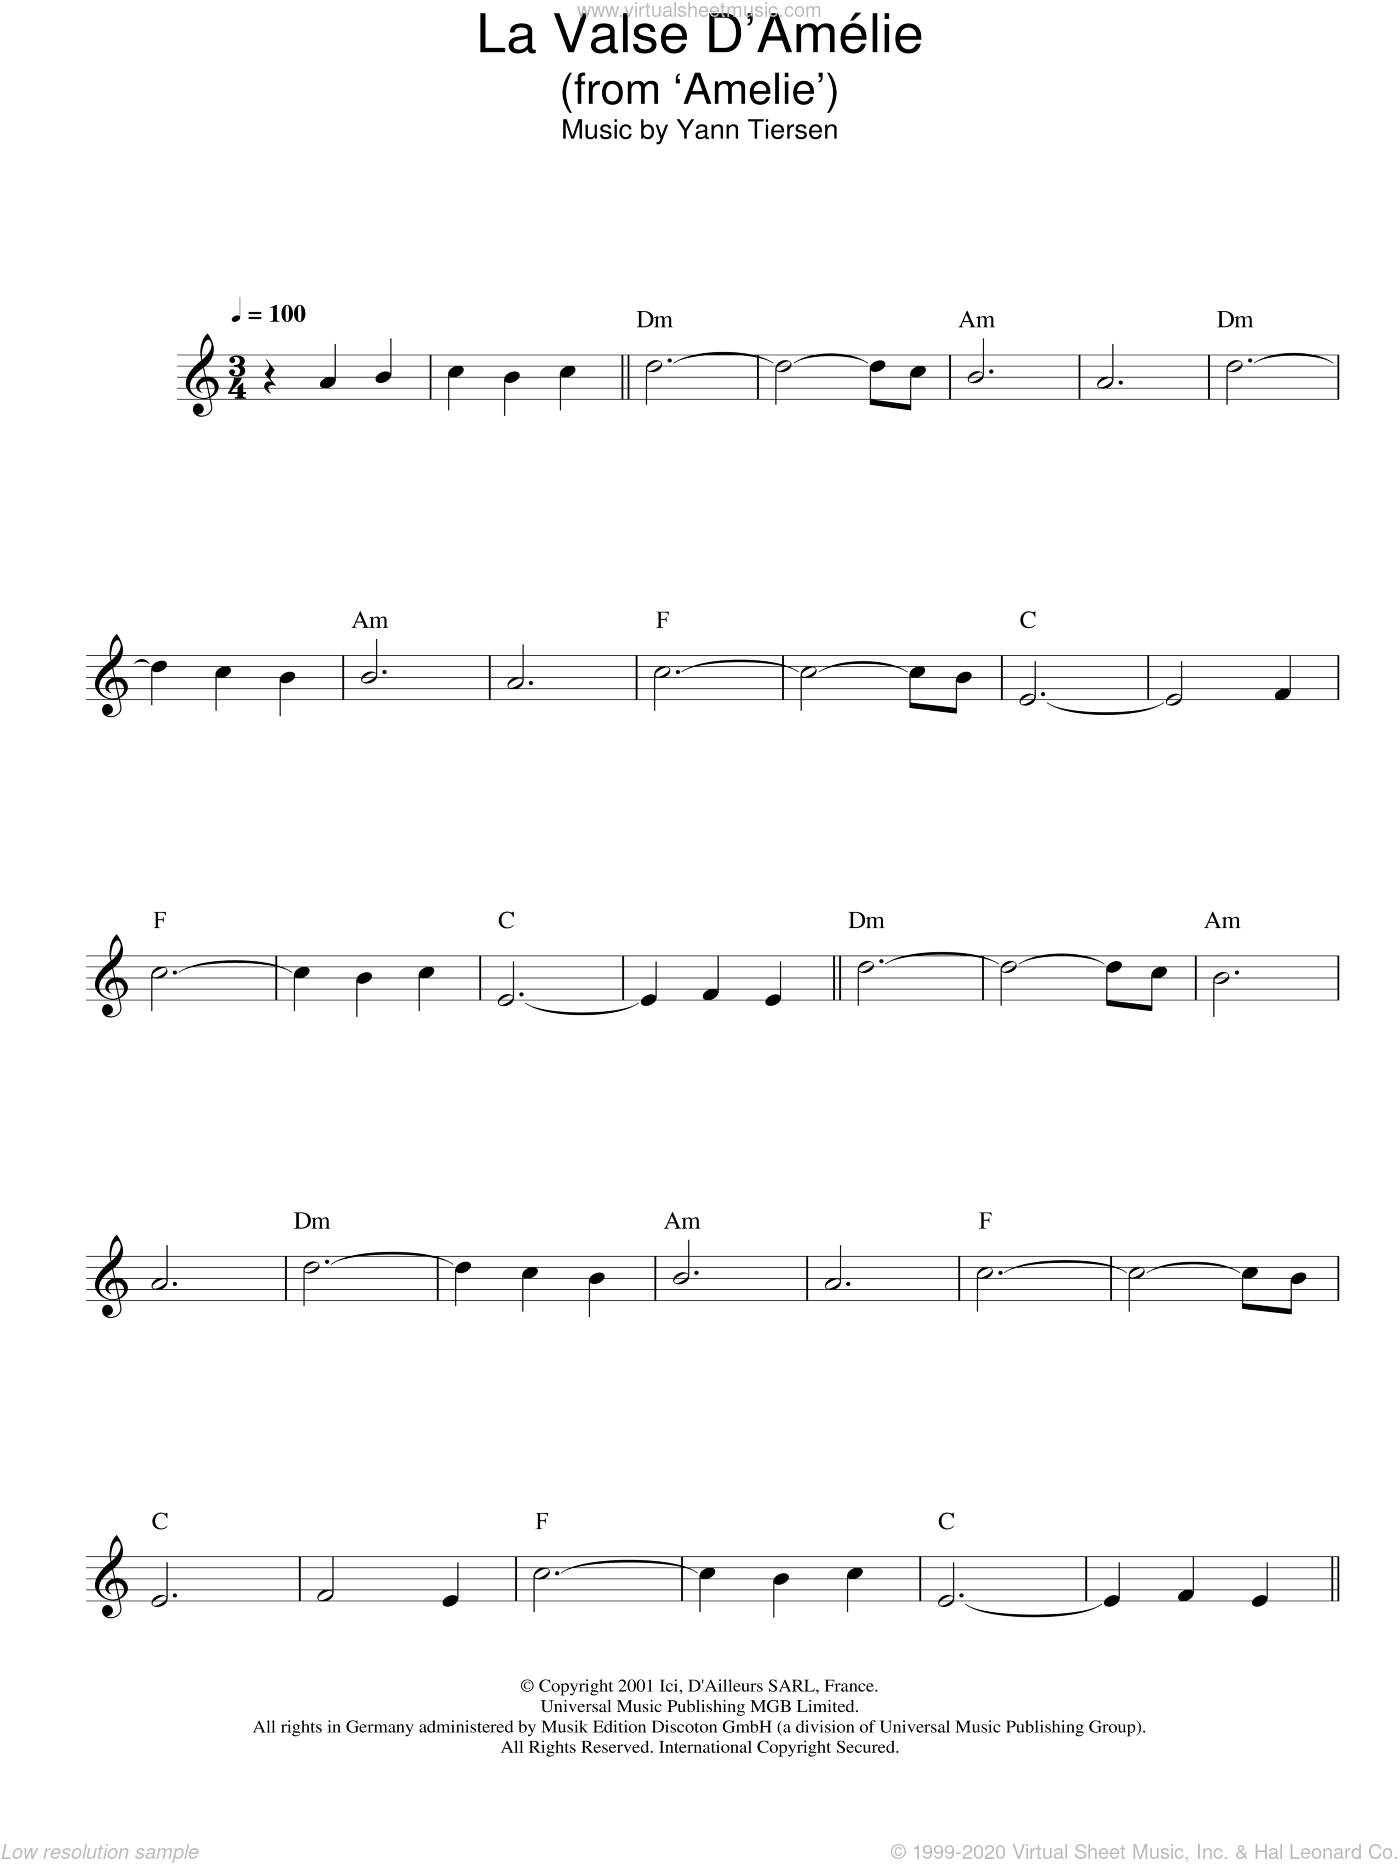 La Valse D'Amelie sheet music for voice and other instruments (fake book) by Yann Tiersen. Score Image Preview.